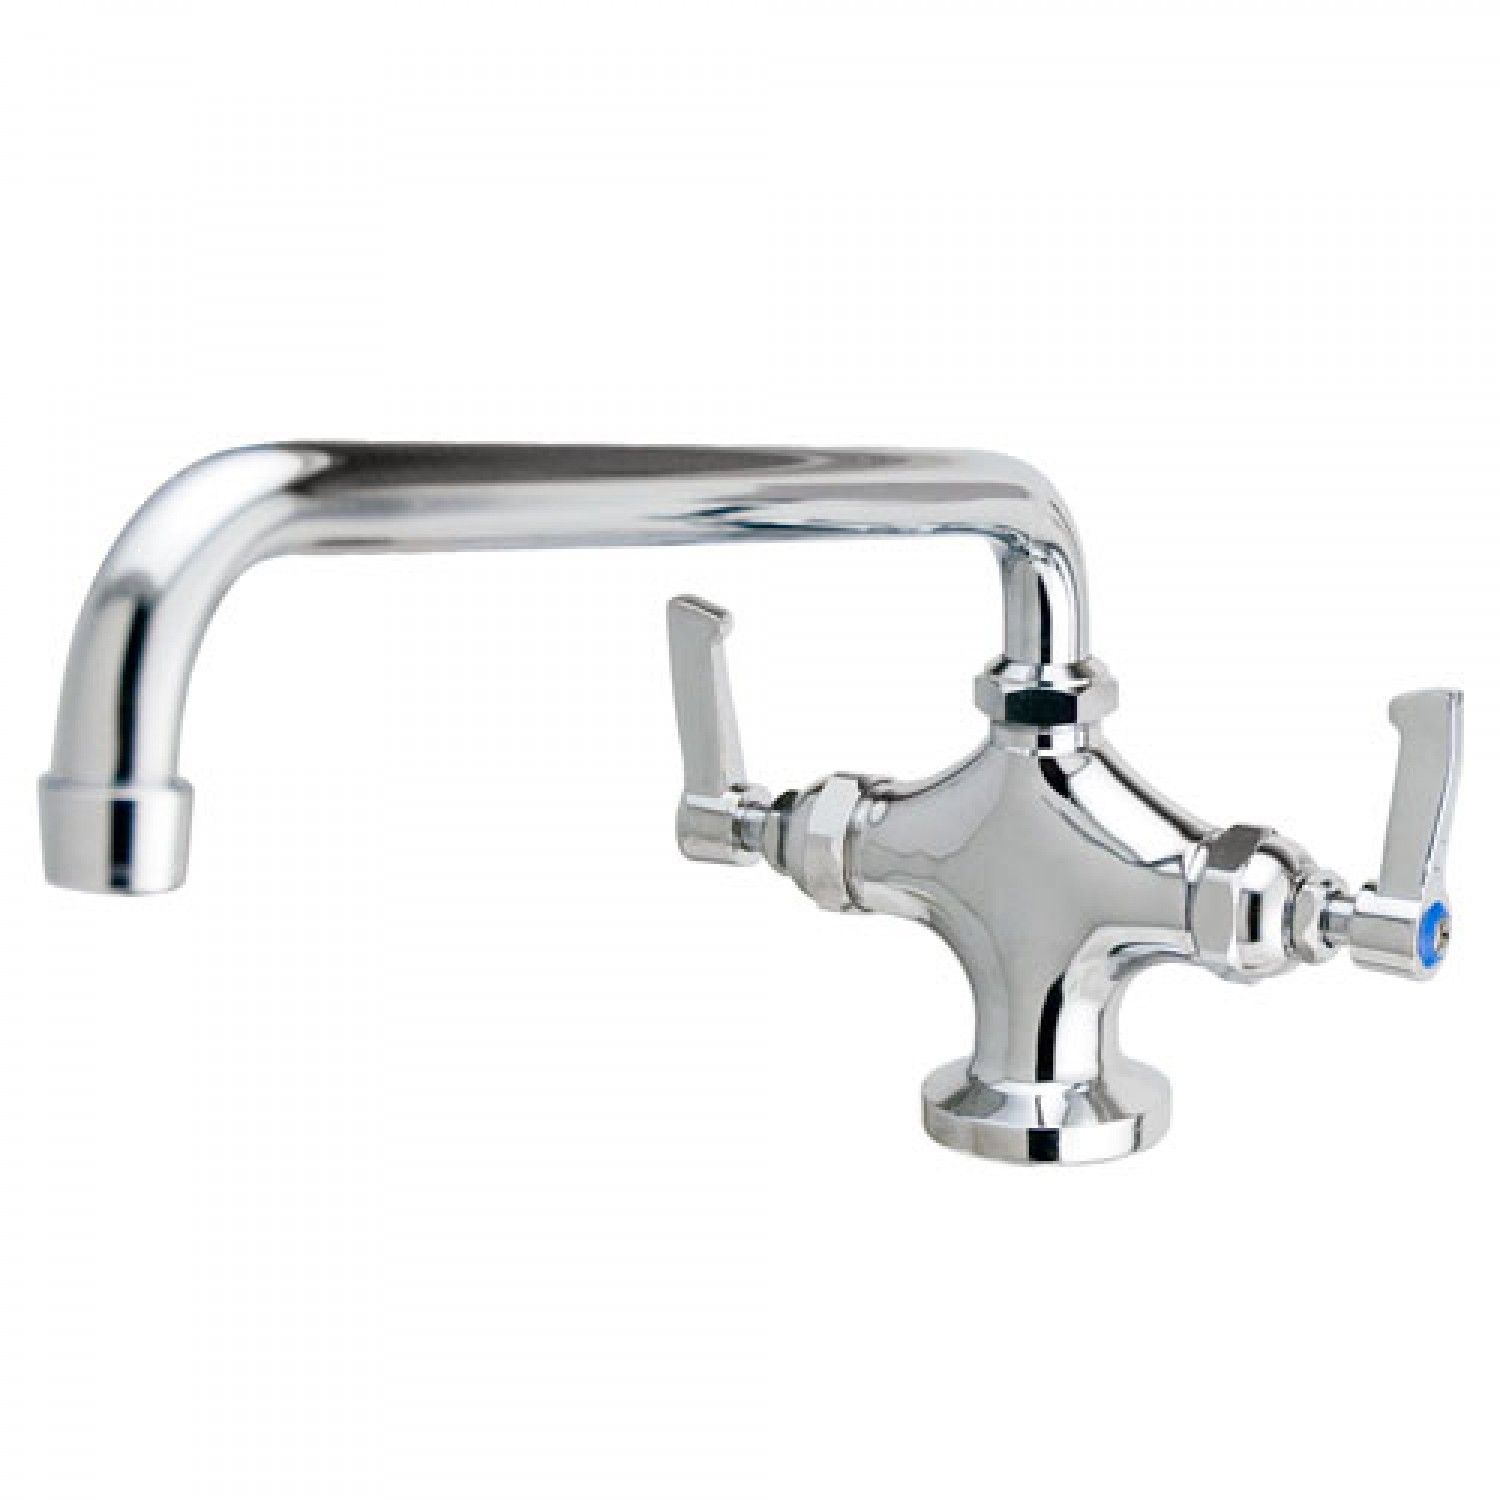 Double Pantry Faucet With 12 Swing Spout Chrome Kitchen Faucets Kitchen Industrial Kitchen Faucet Chrome Kitchen Faucet Modern Kitchen Faucet